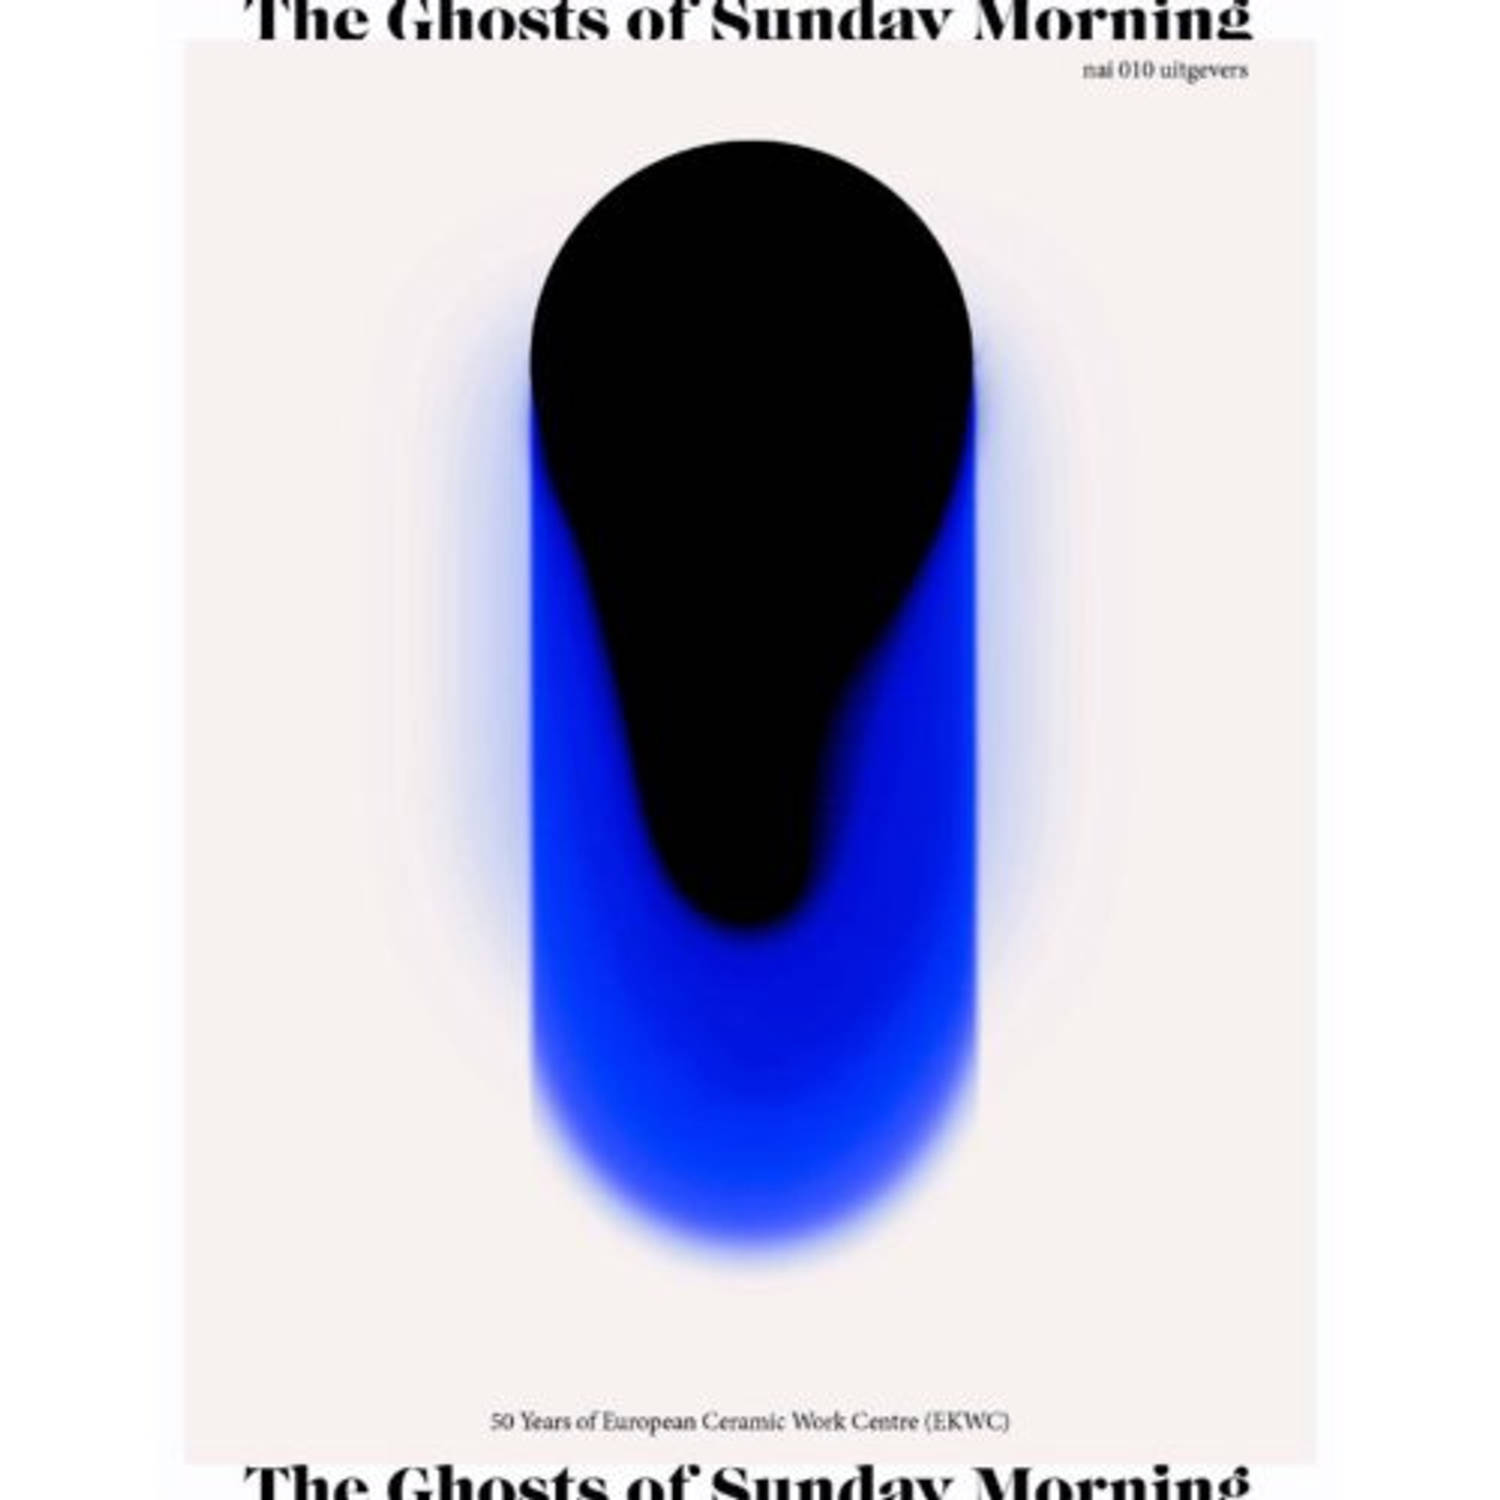 The Ghosts of Sunday Morning